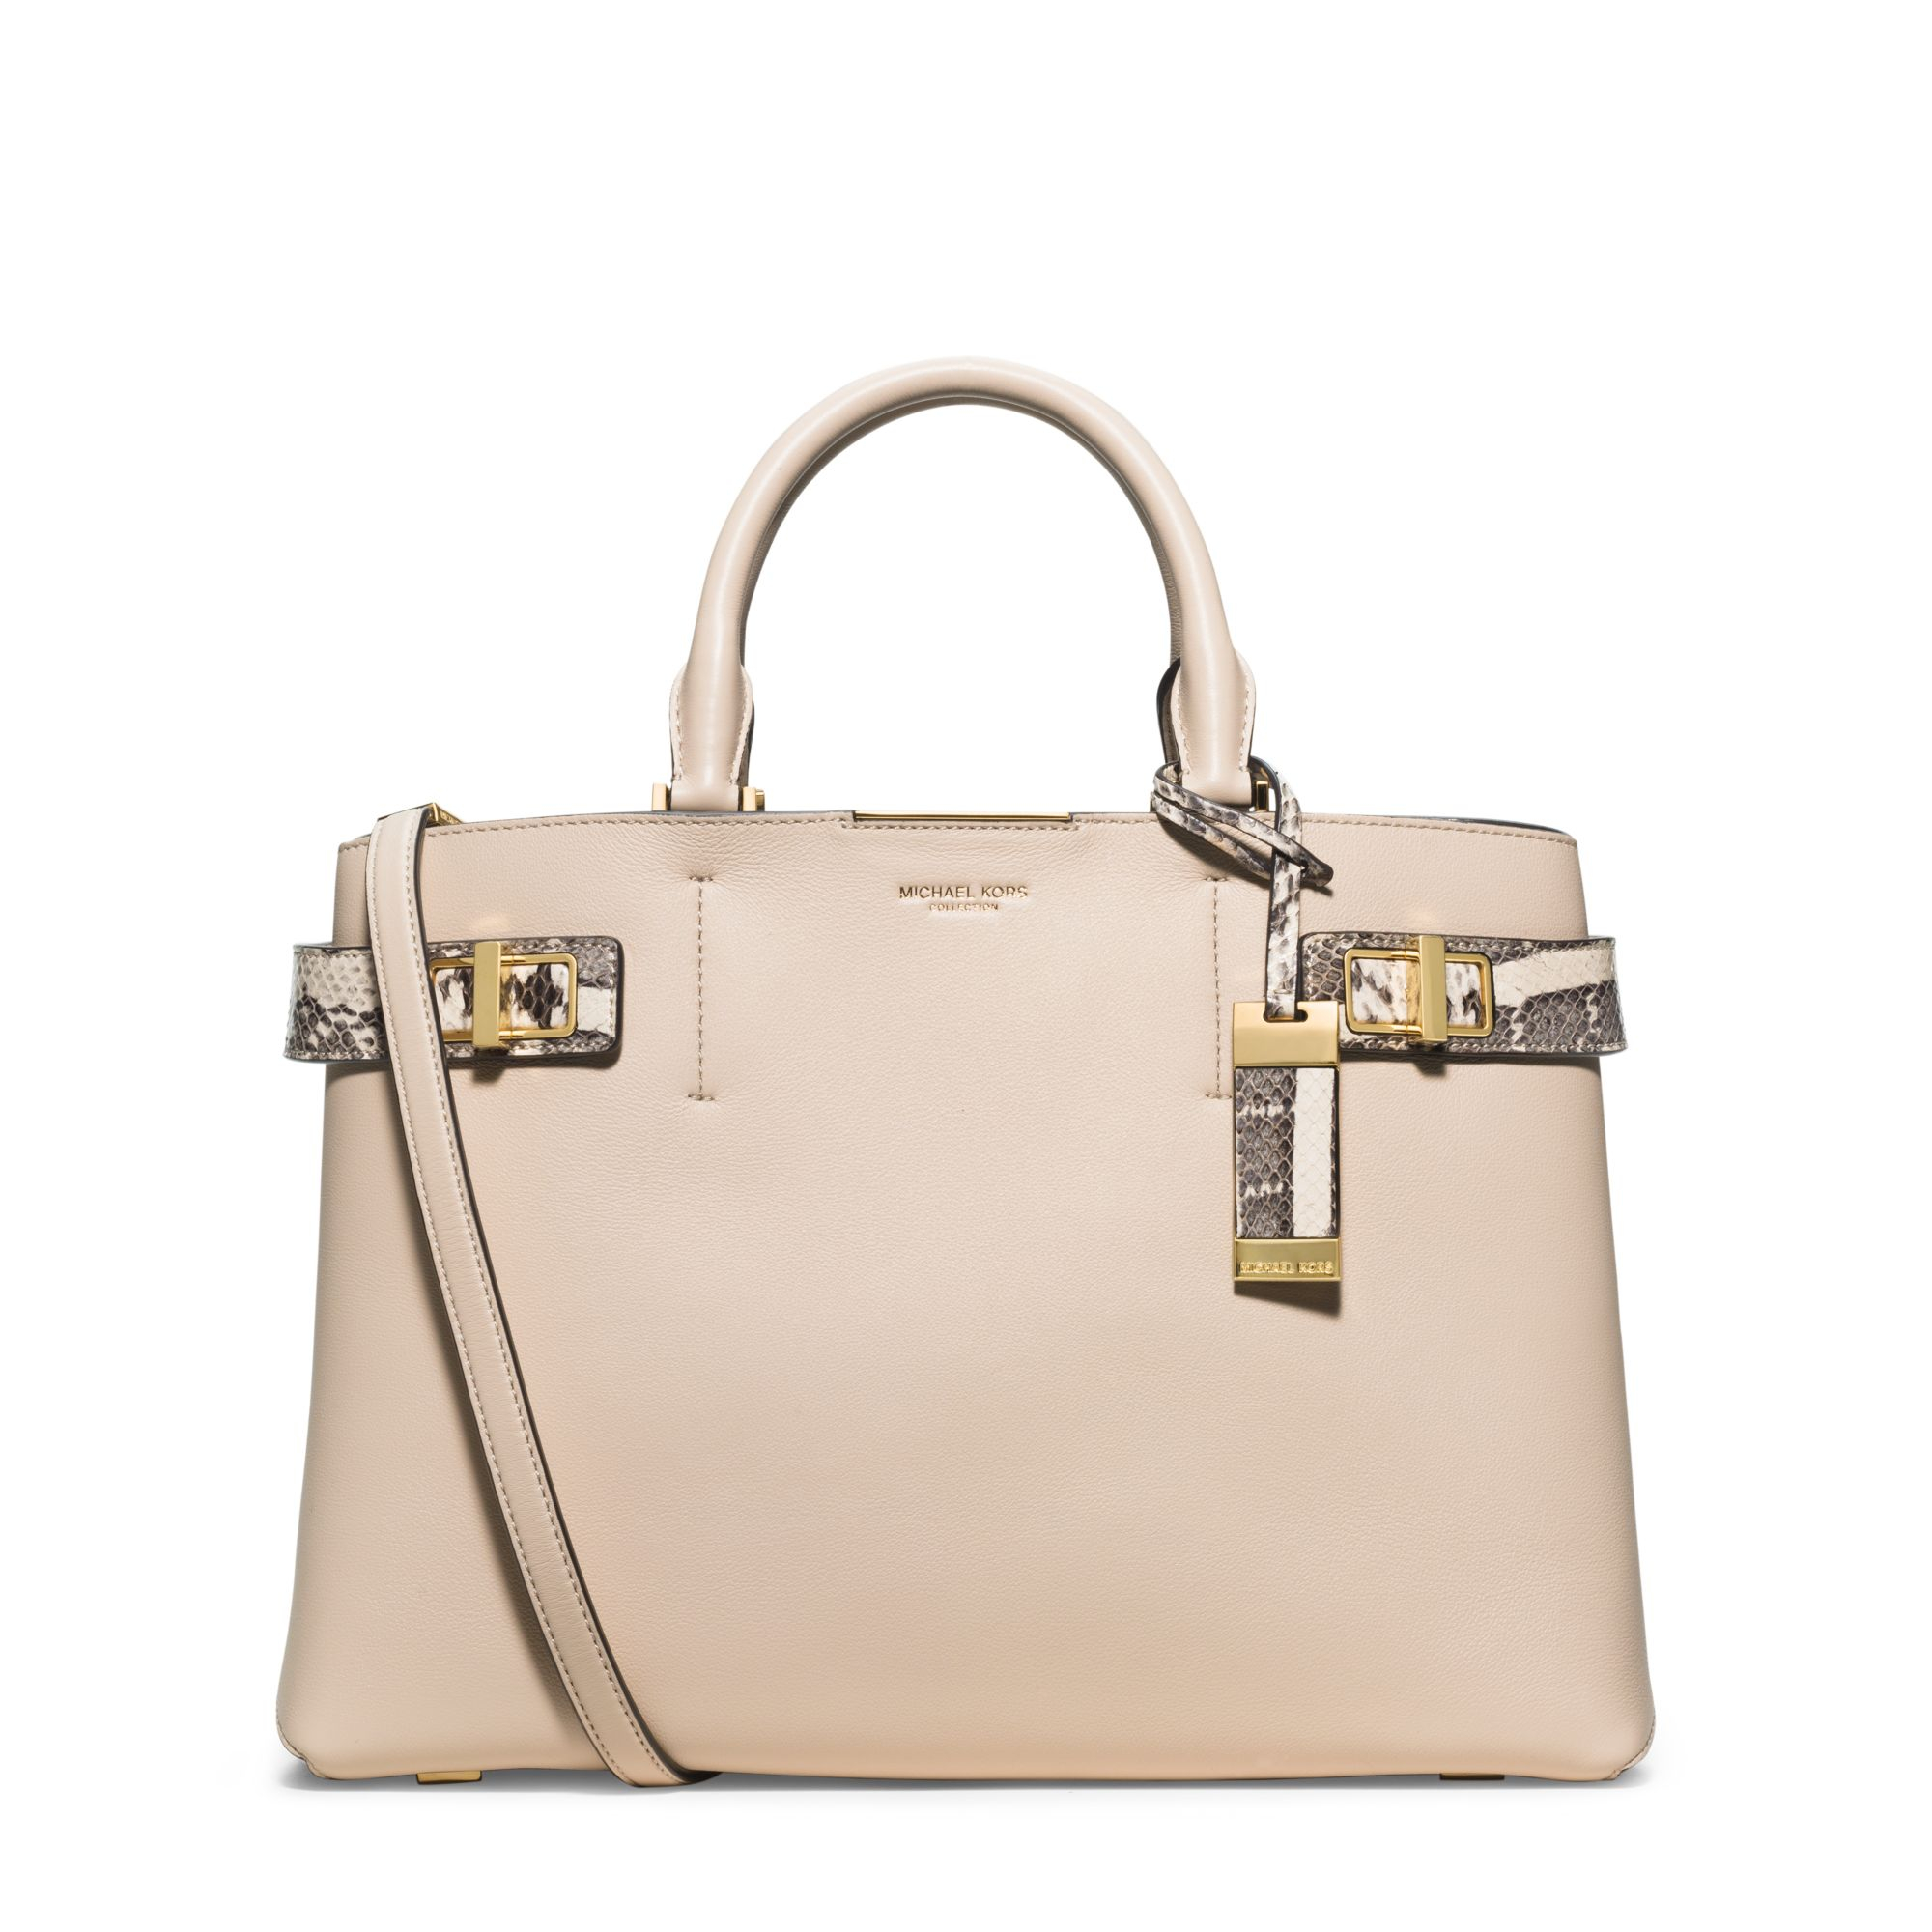 Michael kors Bette Large Leather And Python Satchel in Natural | Lyst